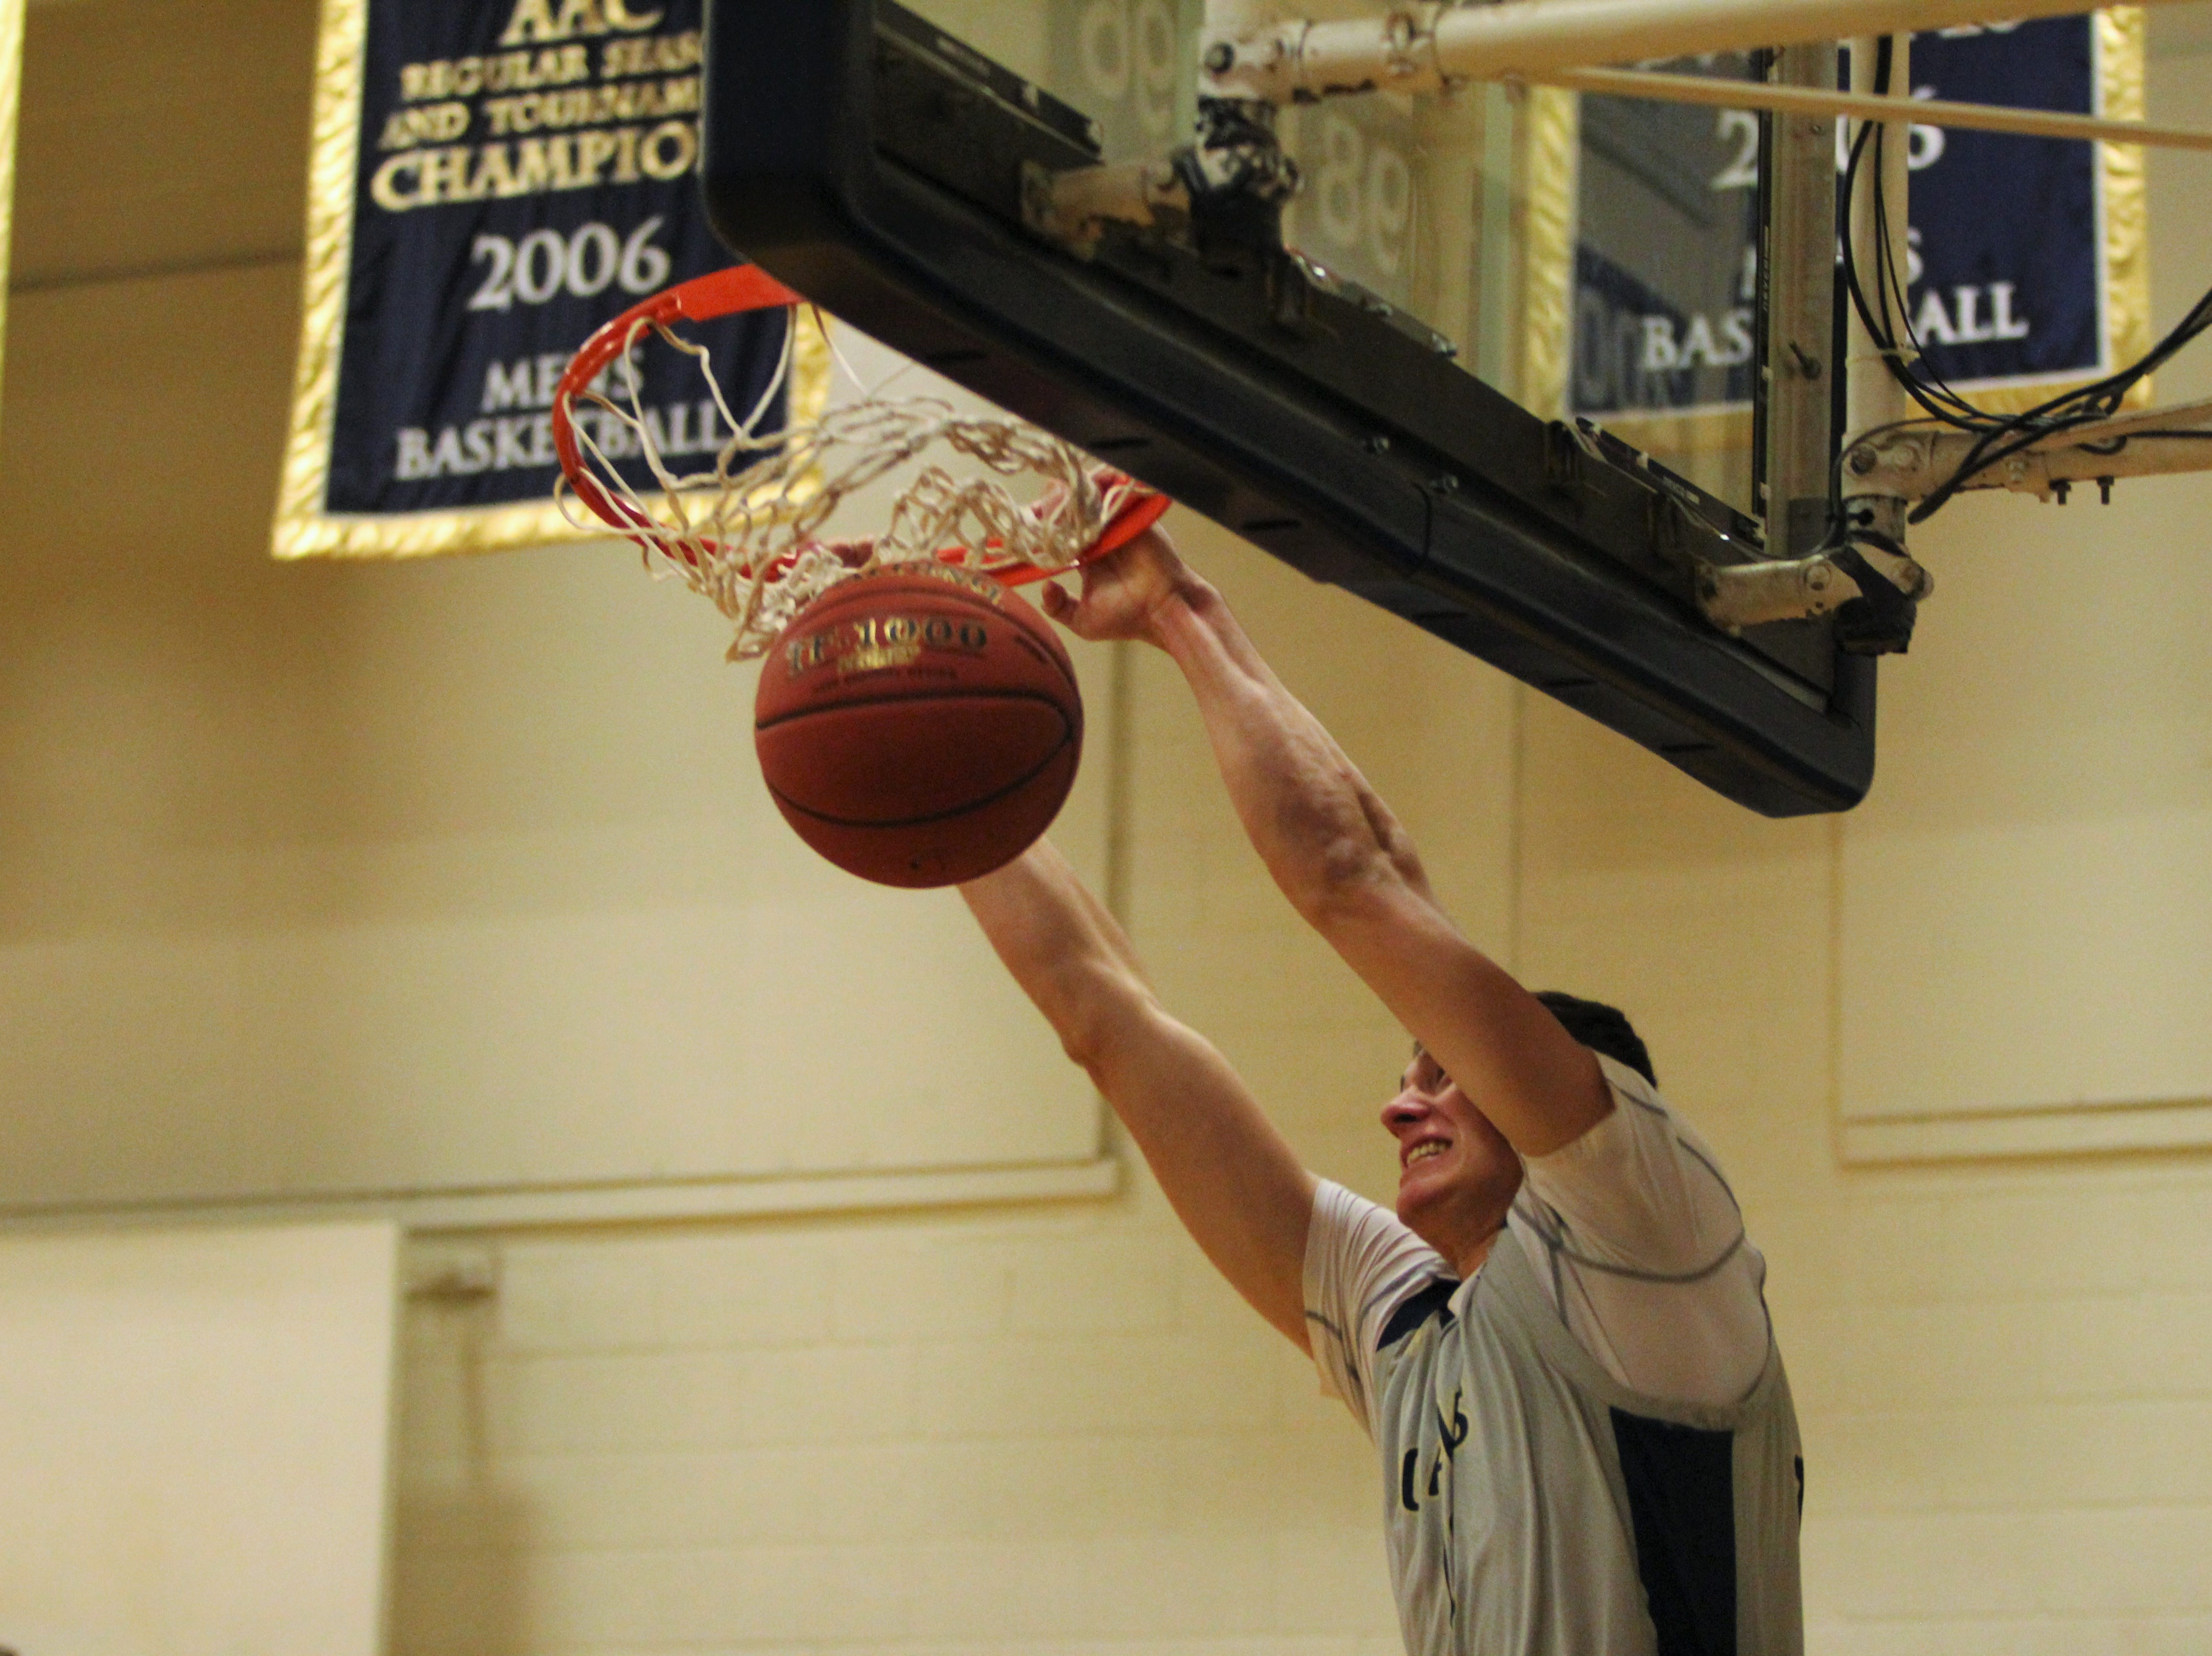 The Montreat Cavaliers improved to 17-4 on Jan. 31, with a 94-77 win over Appalachian Athletic Conference rival Milligan, in front of a sellout crowd inside of McAlister Gym.